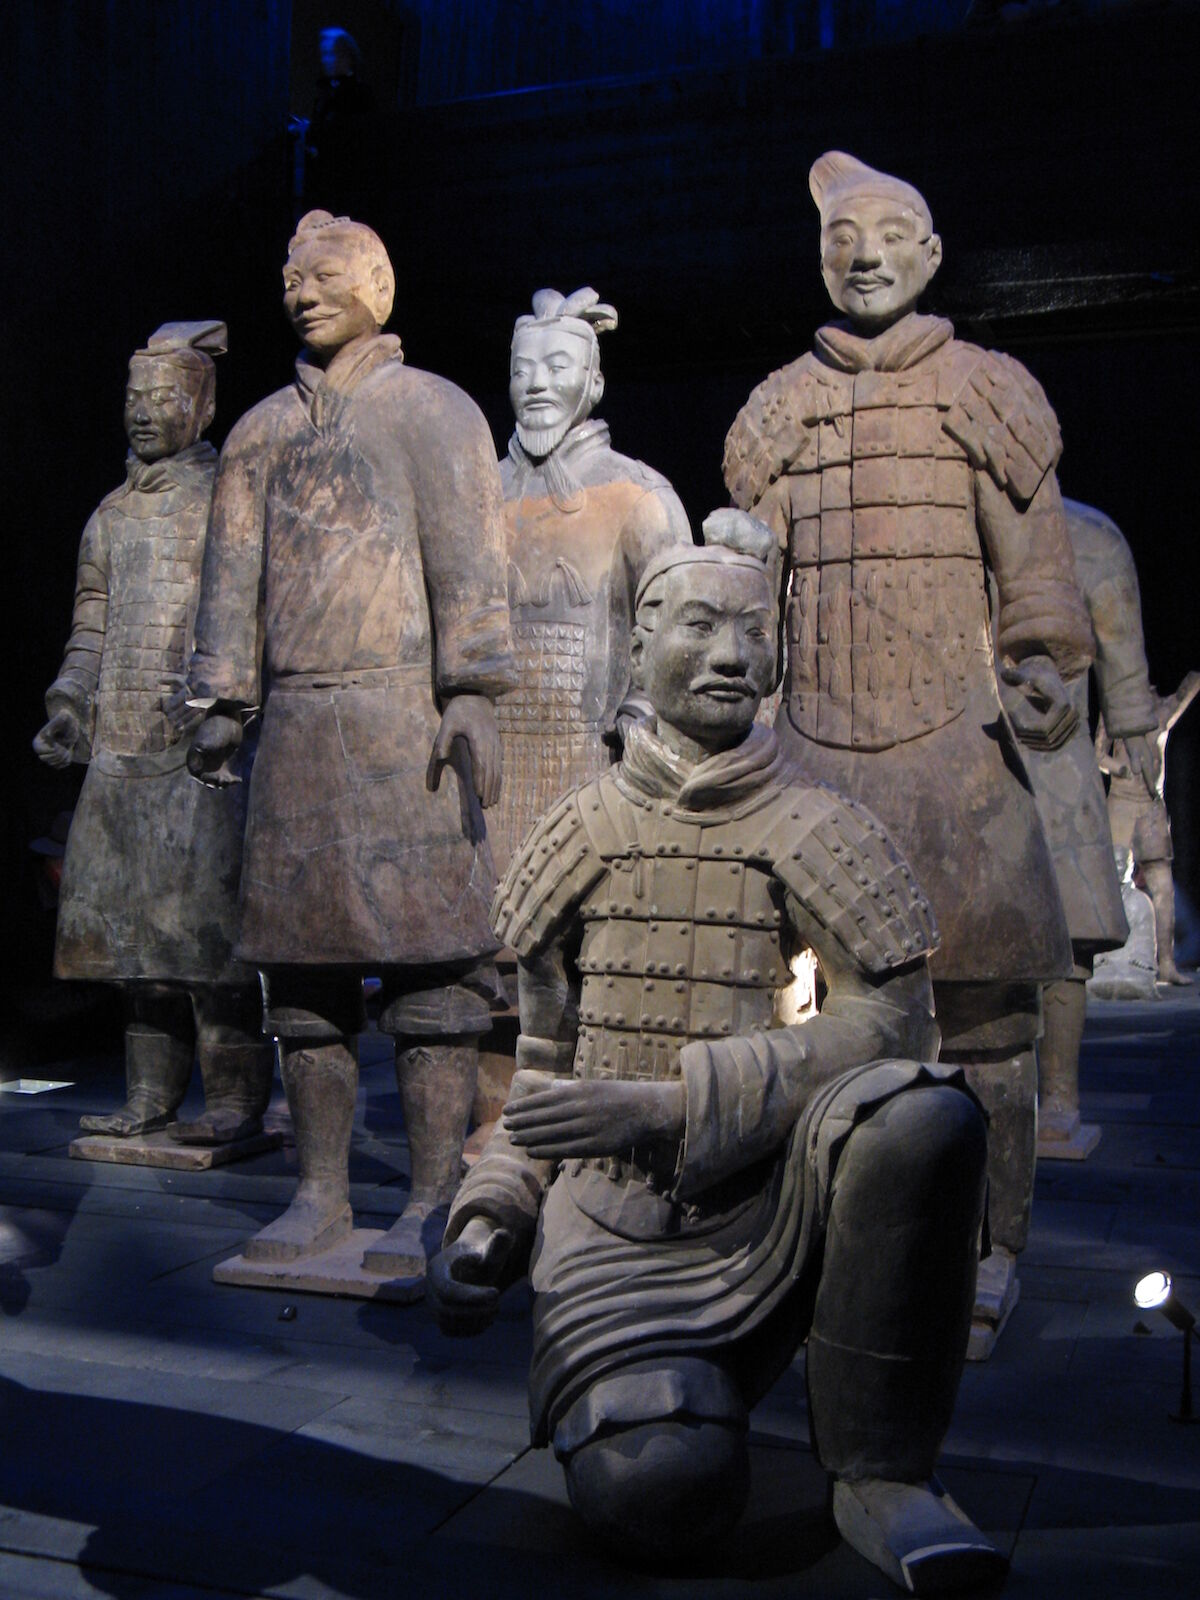 Terra-cotta warrior figures. Photo by Dohduhdah, via Wikimedia Commons.